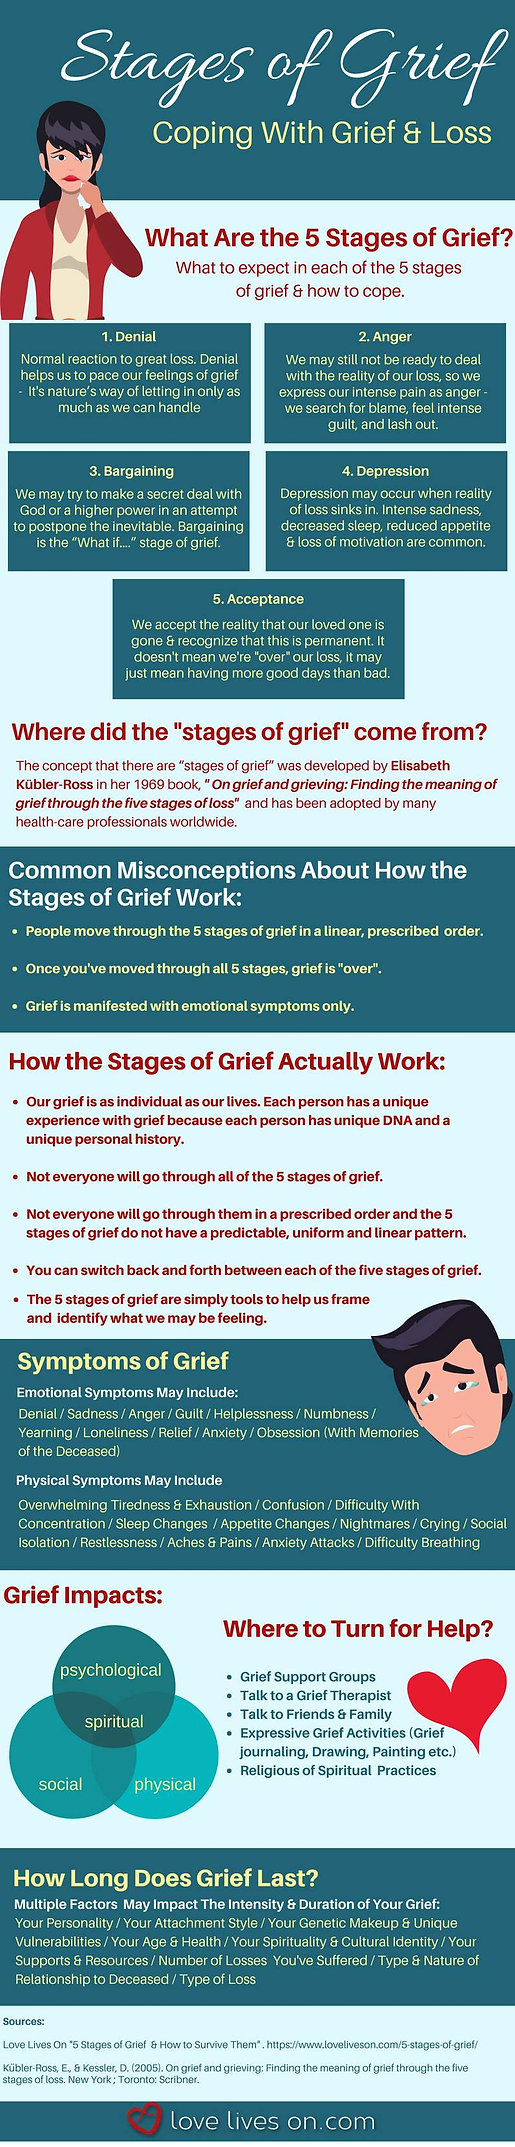 5-Stages-of-Grief-How-to-Survive-Them-In